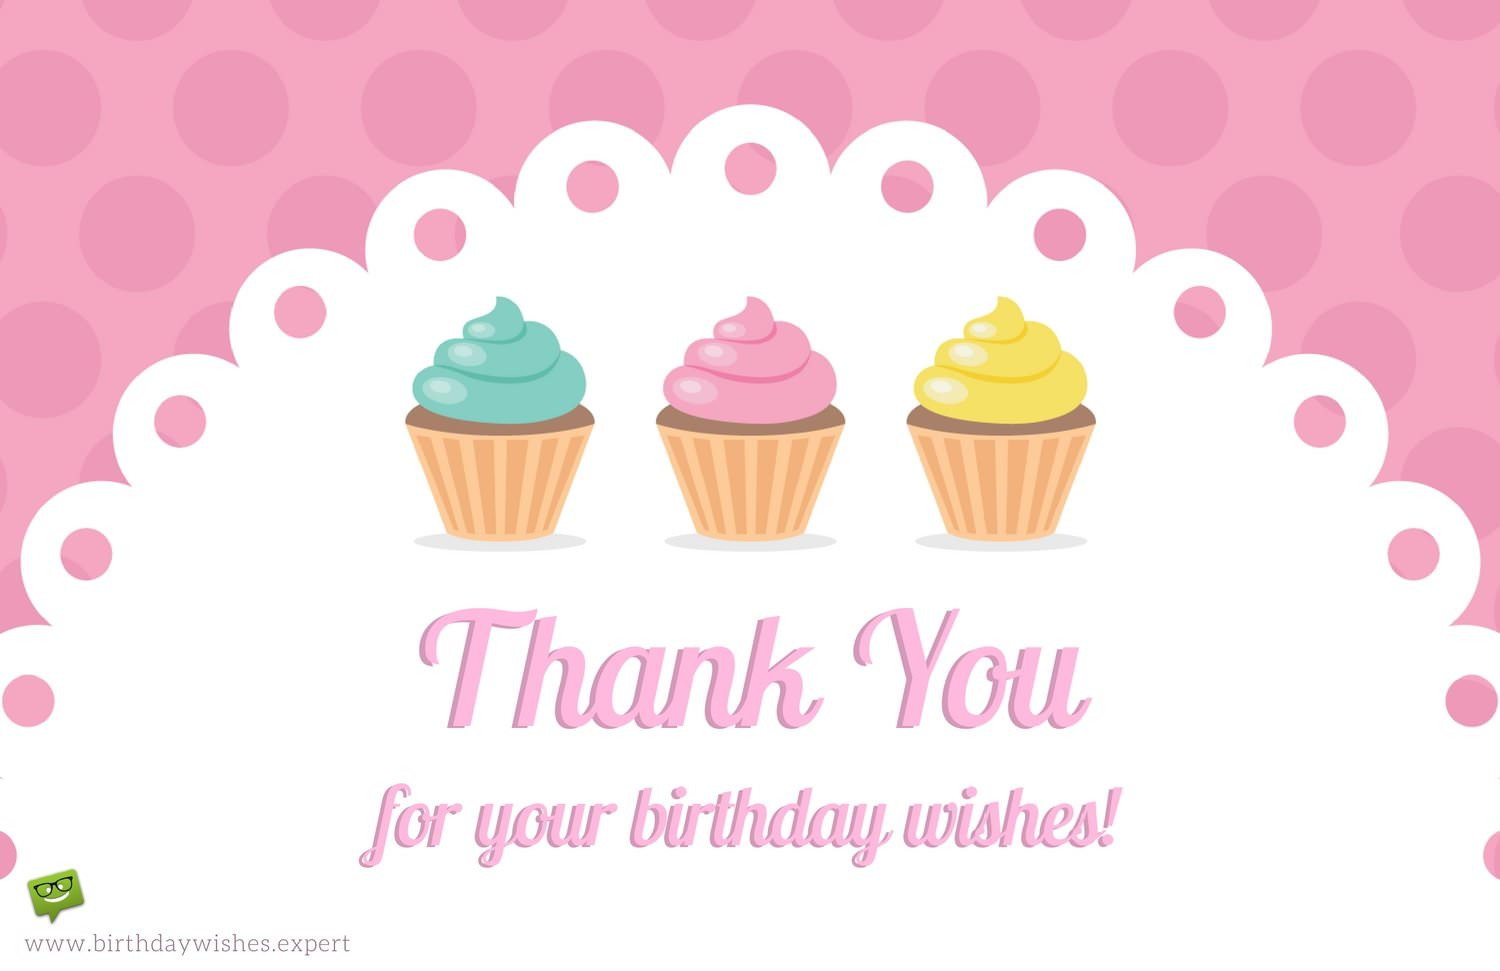 Best ideas about Thank You Note For Birthday Wishes . Save or Pin Thank You Notes for Your Birthday Wishes Now.